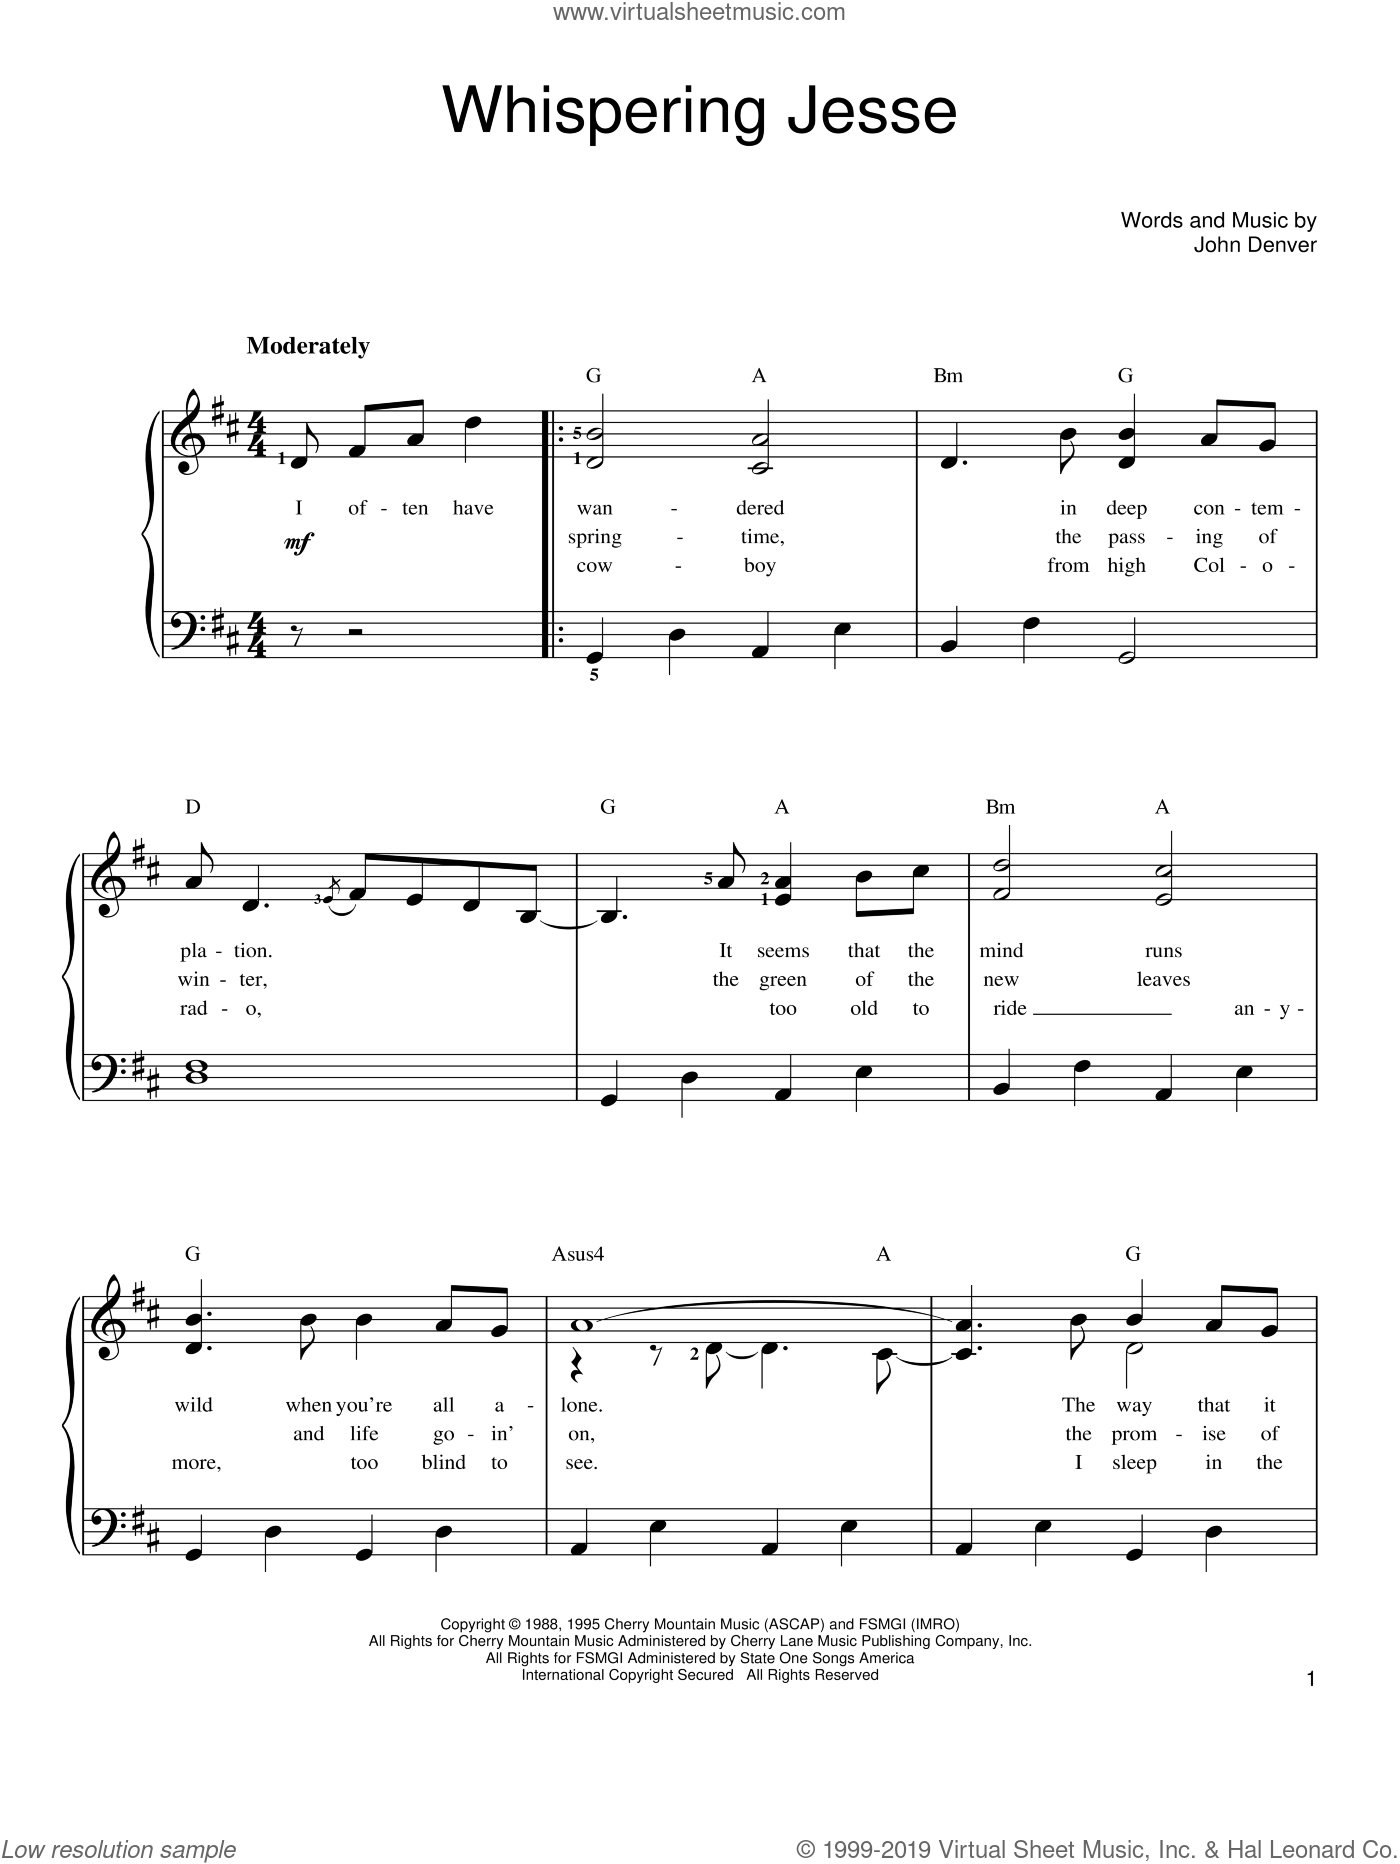 Whispering Jesse sheet music for piano solo by John Denver, easy